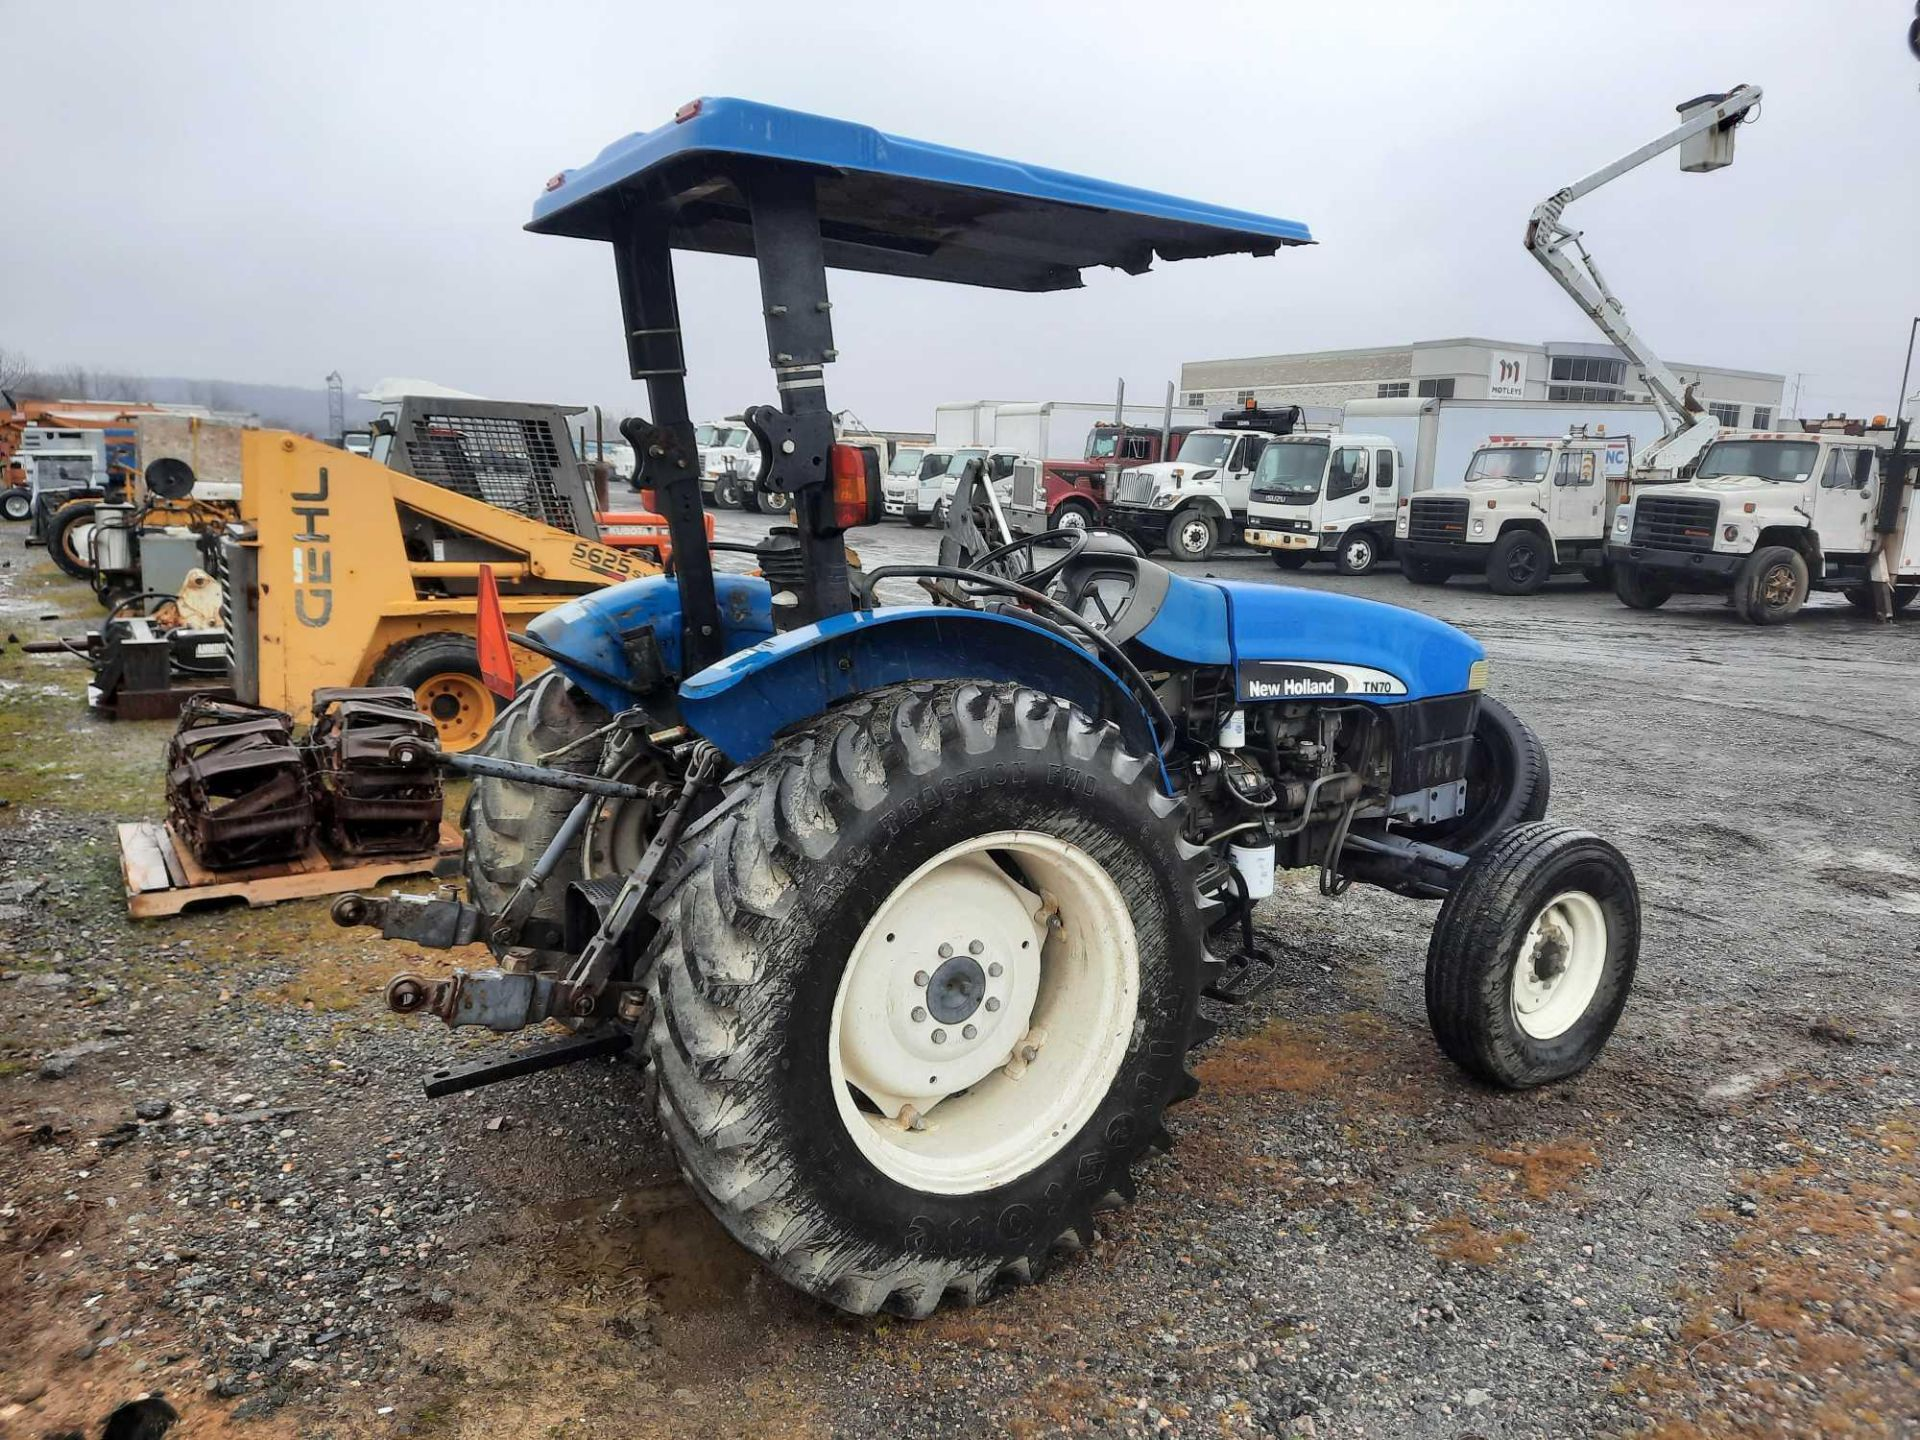 200 NEW HOLLAND TN70 TRACTOR - Image 3 of 4